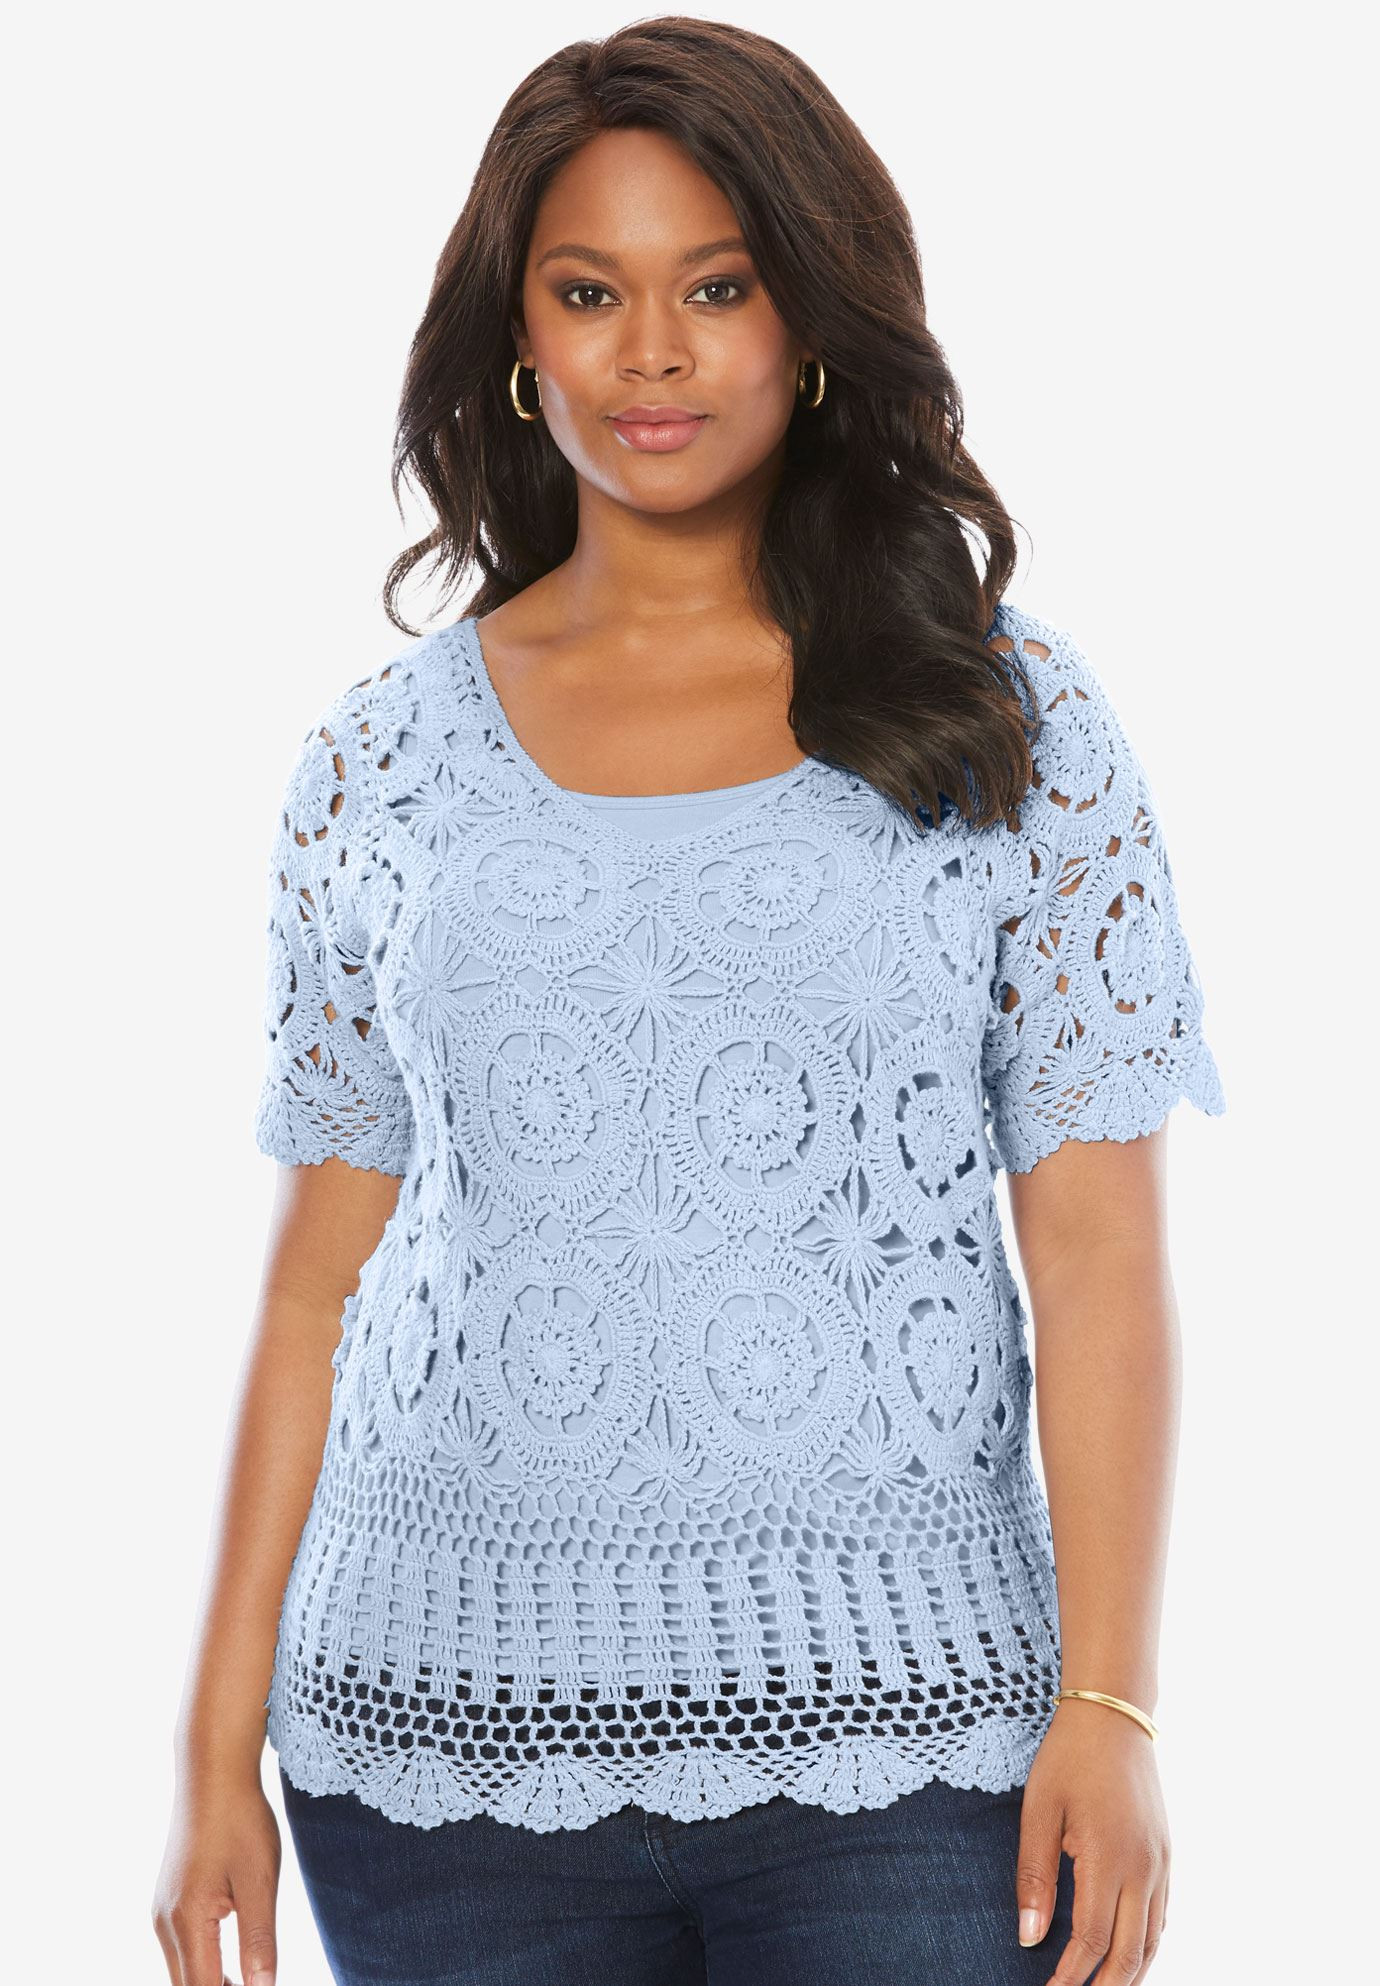 Plus Size Crochet Vest New French Crochet Sweater by Denim 24 7 Of Fresh 49 Pics Plus Size Crochet Vest